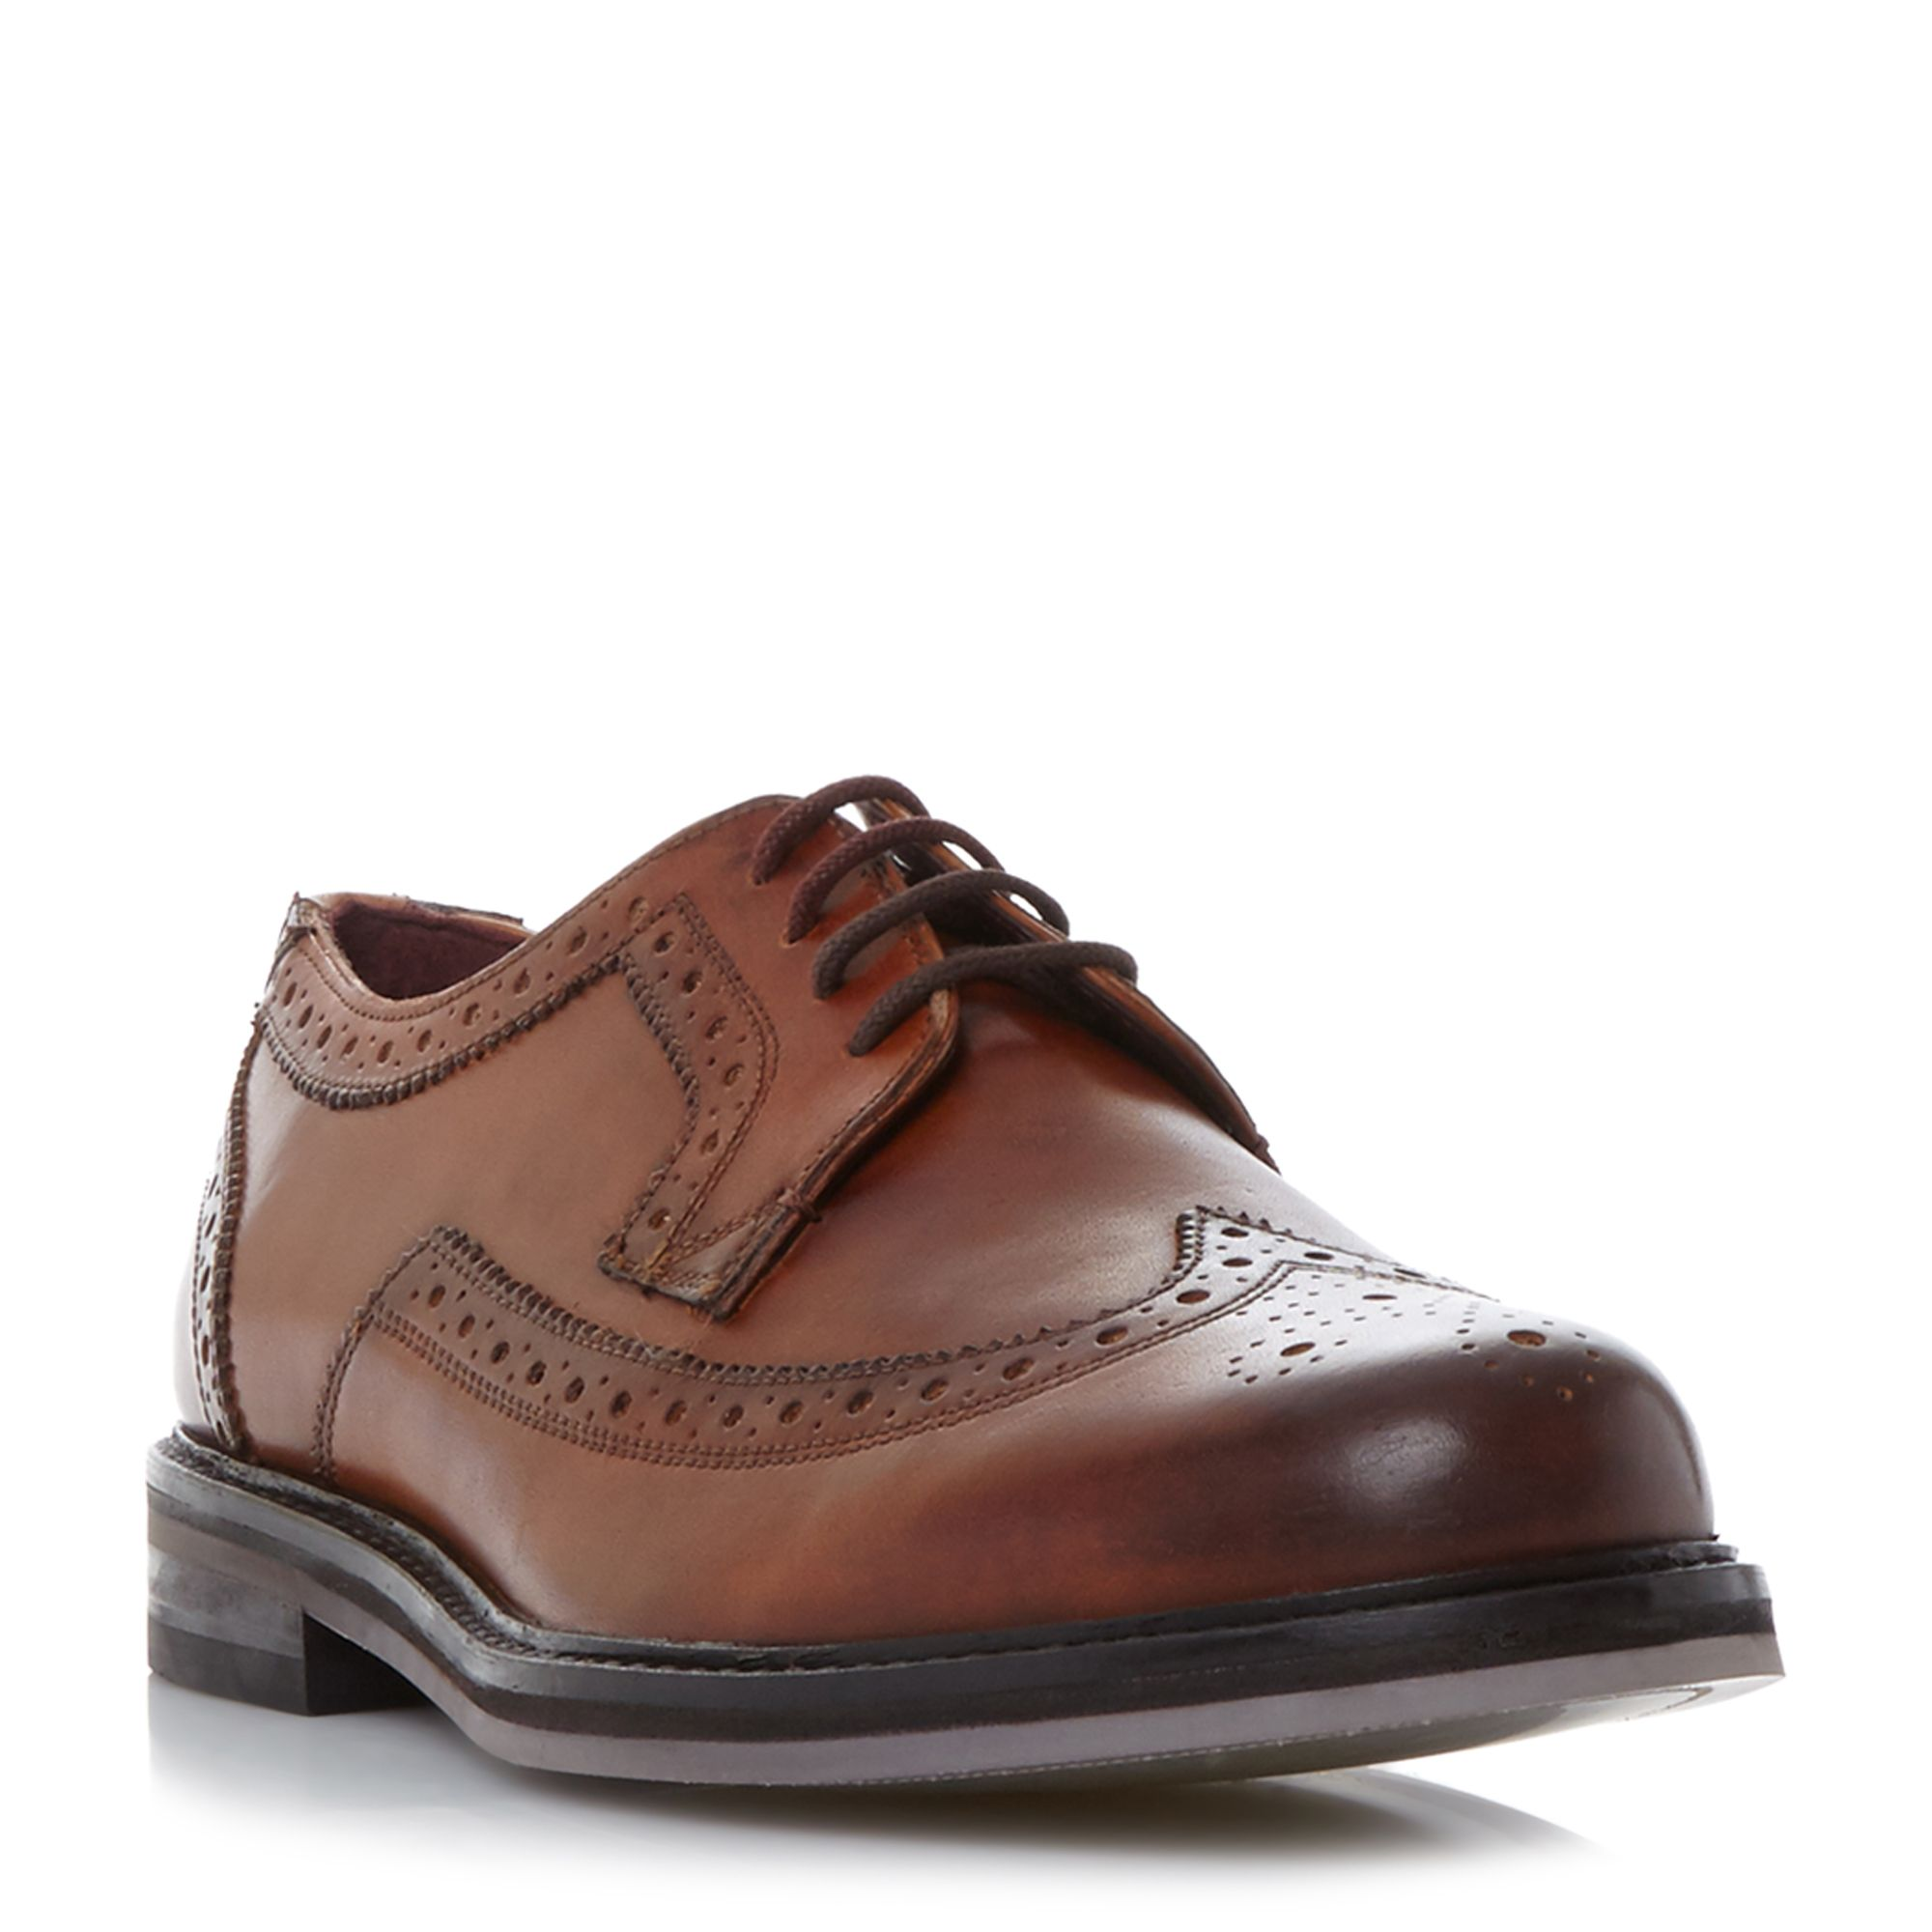 Ted Baker Ttanum 3 punched brogue shoes Tan